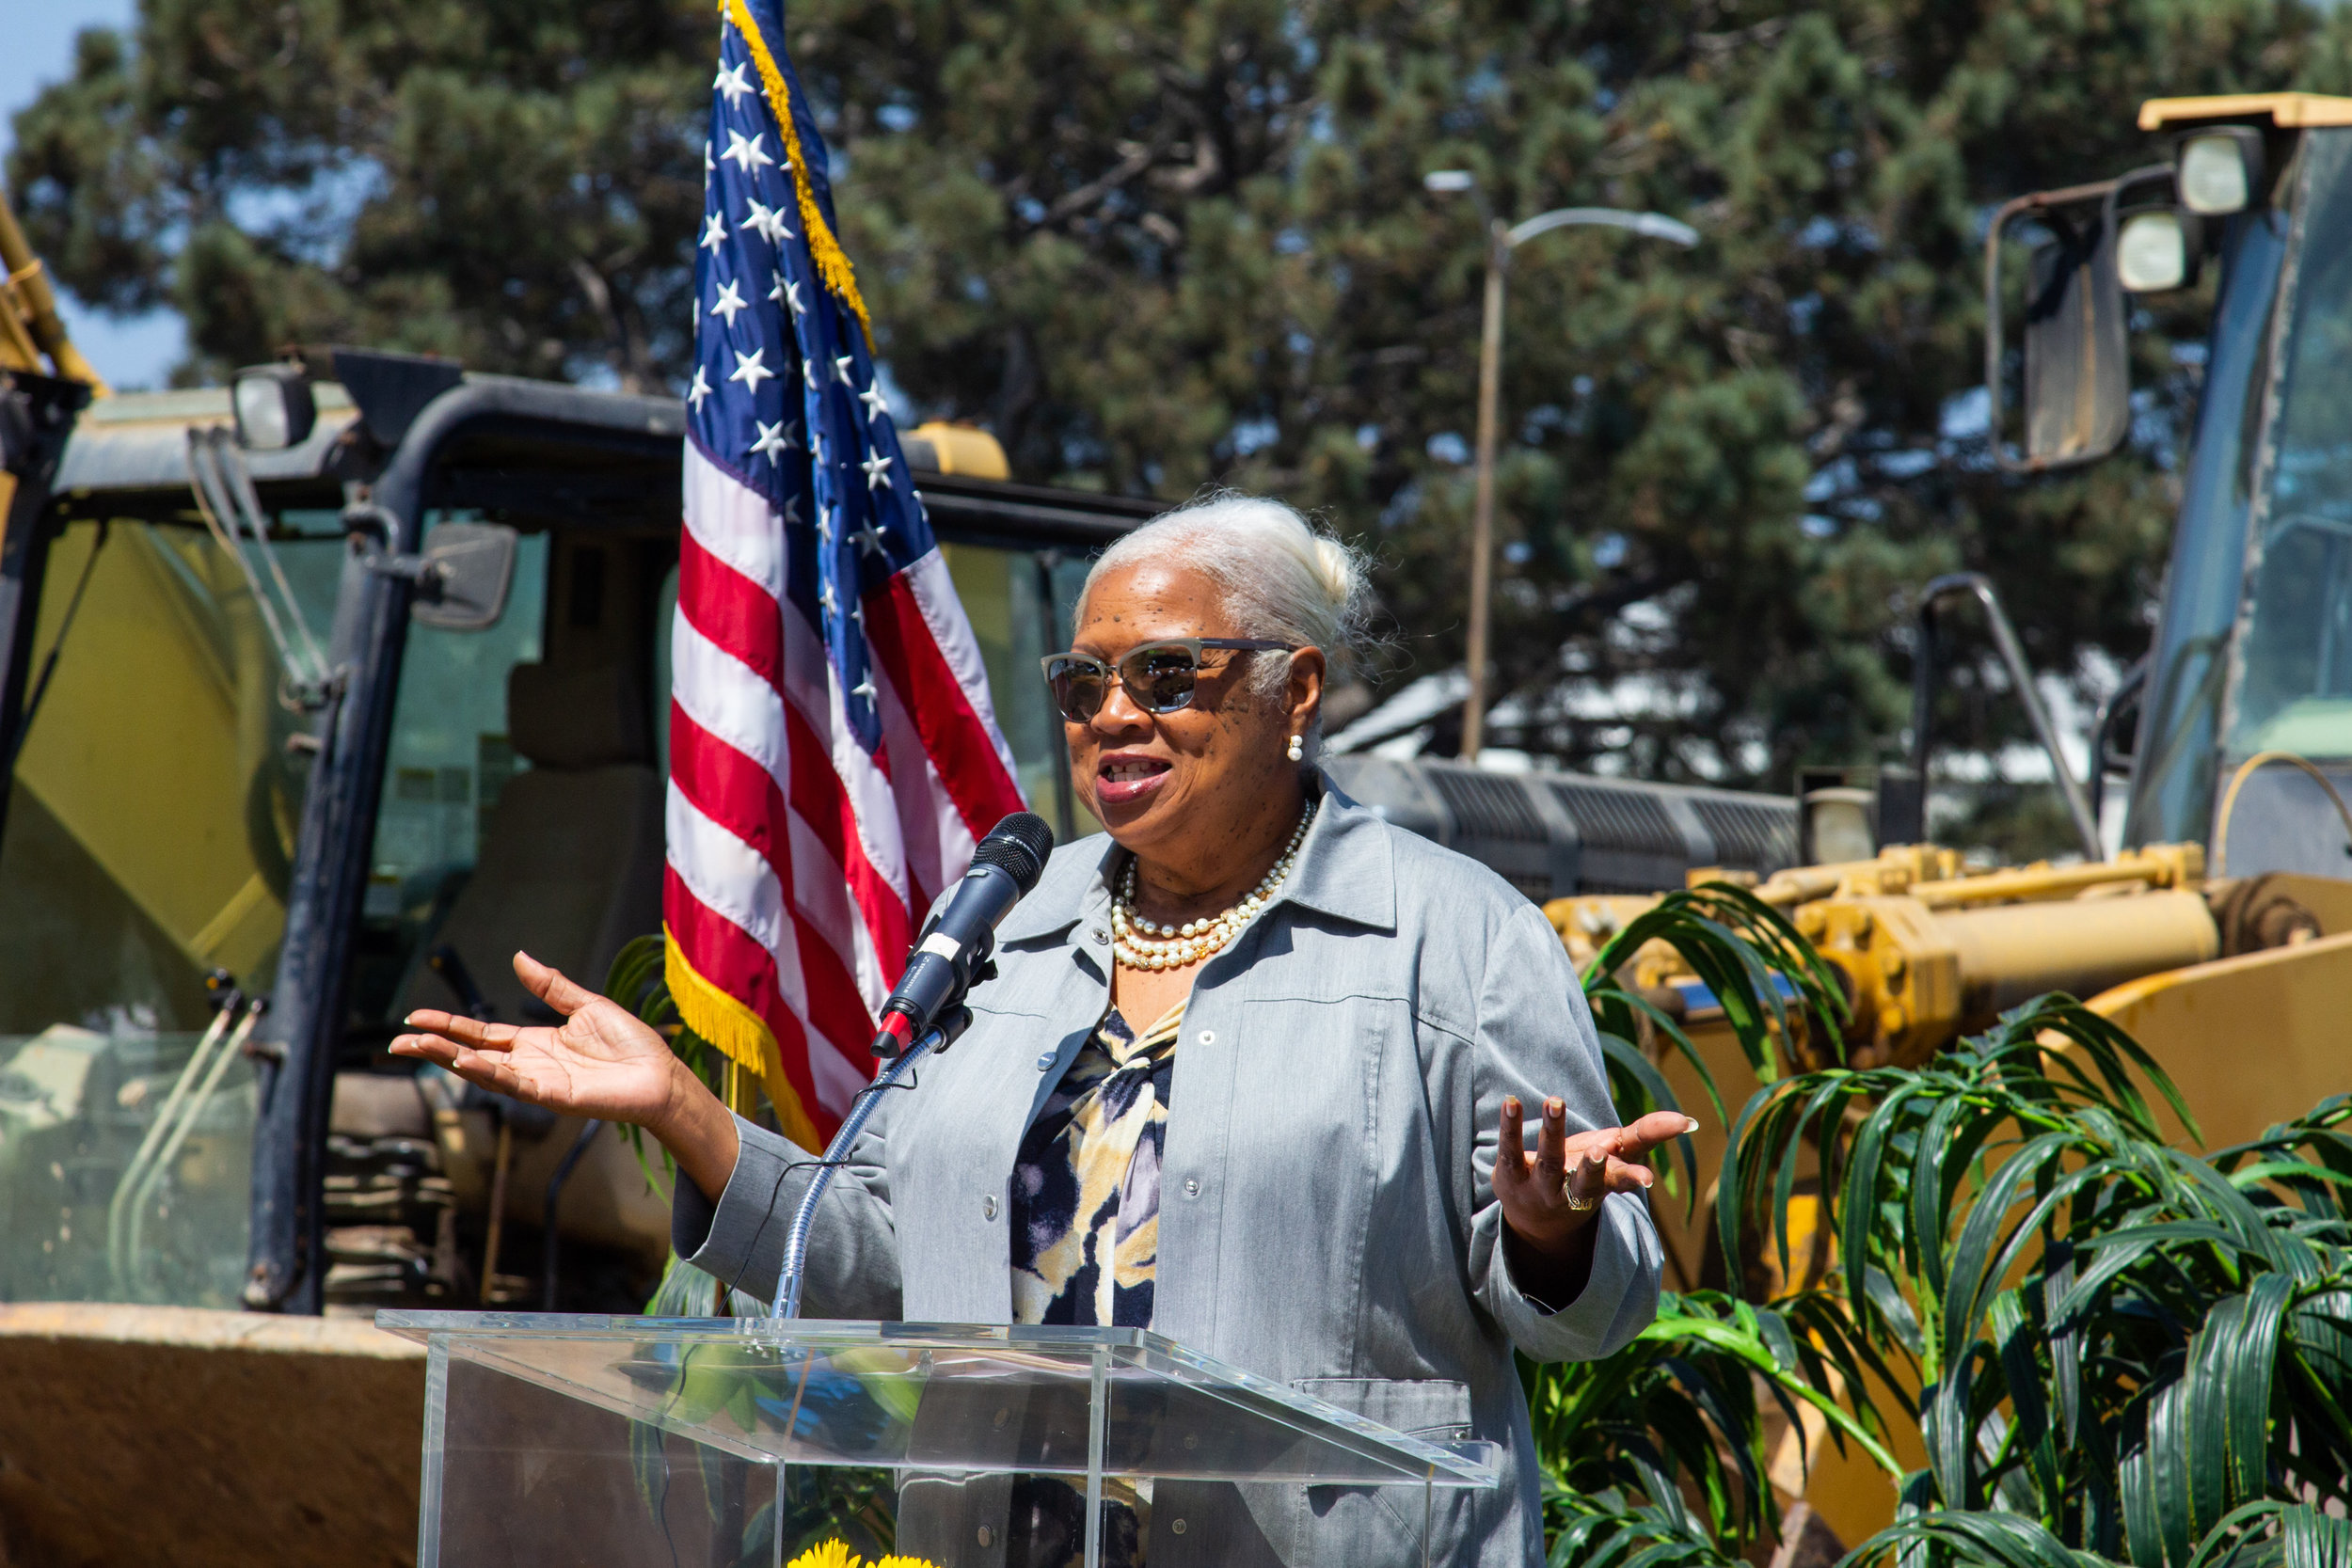 Santa Monica College President & Superintendent Dr. Kathryn Jeffery speaks at the groundbreaking ceremony for the John Adams Middle School Performing Arts Complex in Santa Monica, California on Wednesday, August 28th, 2019.